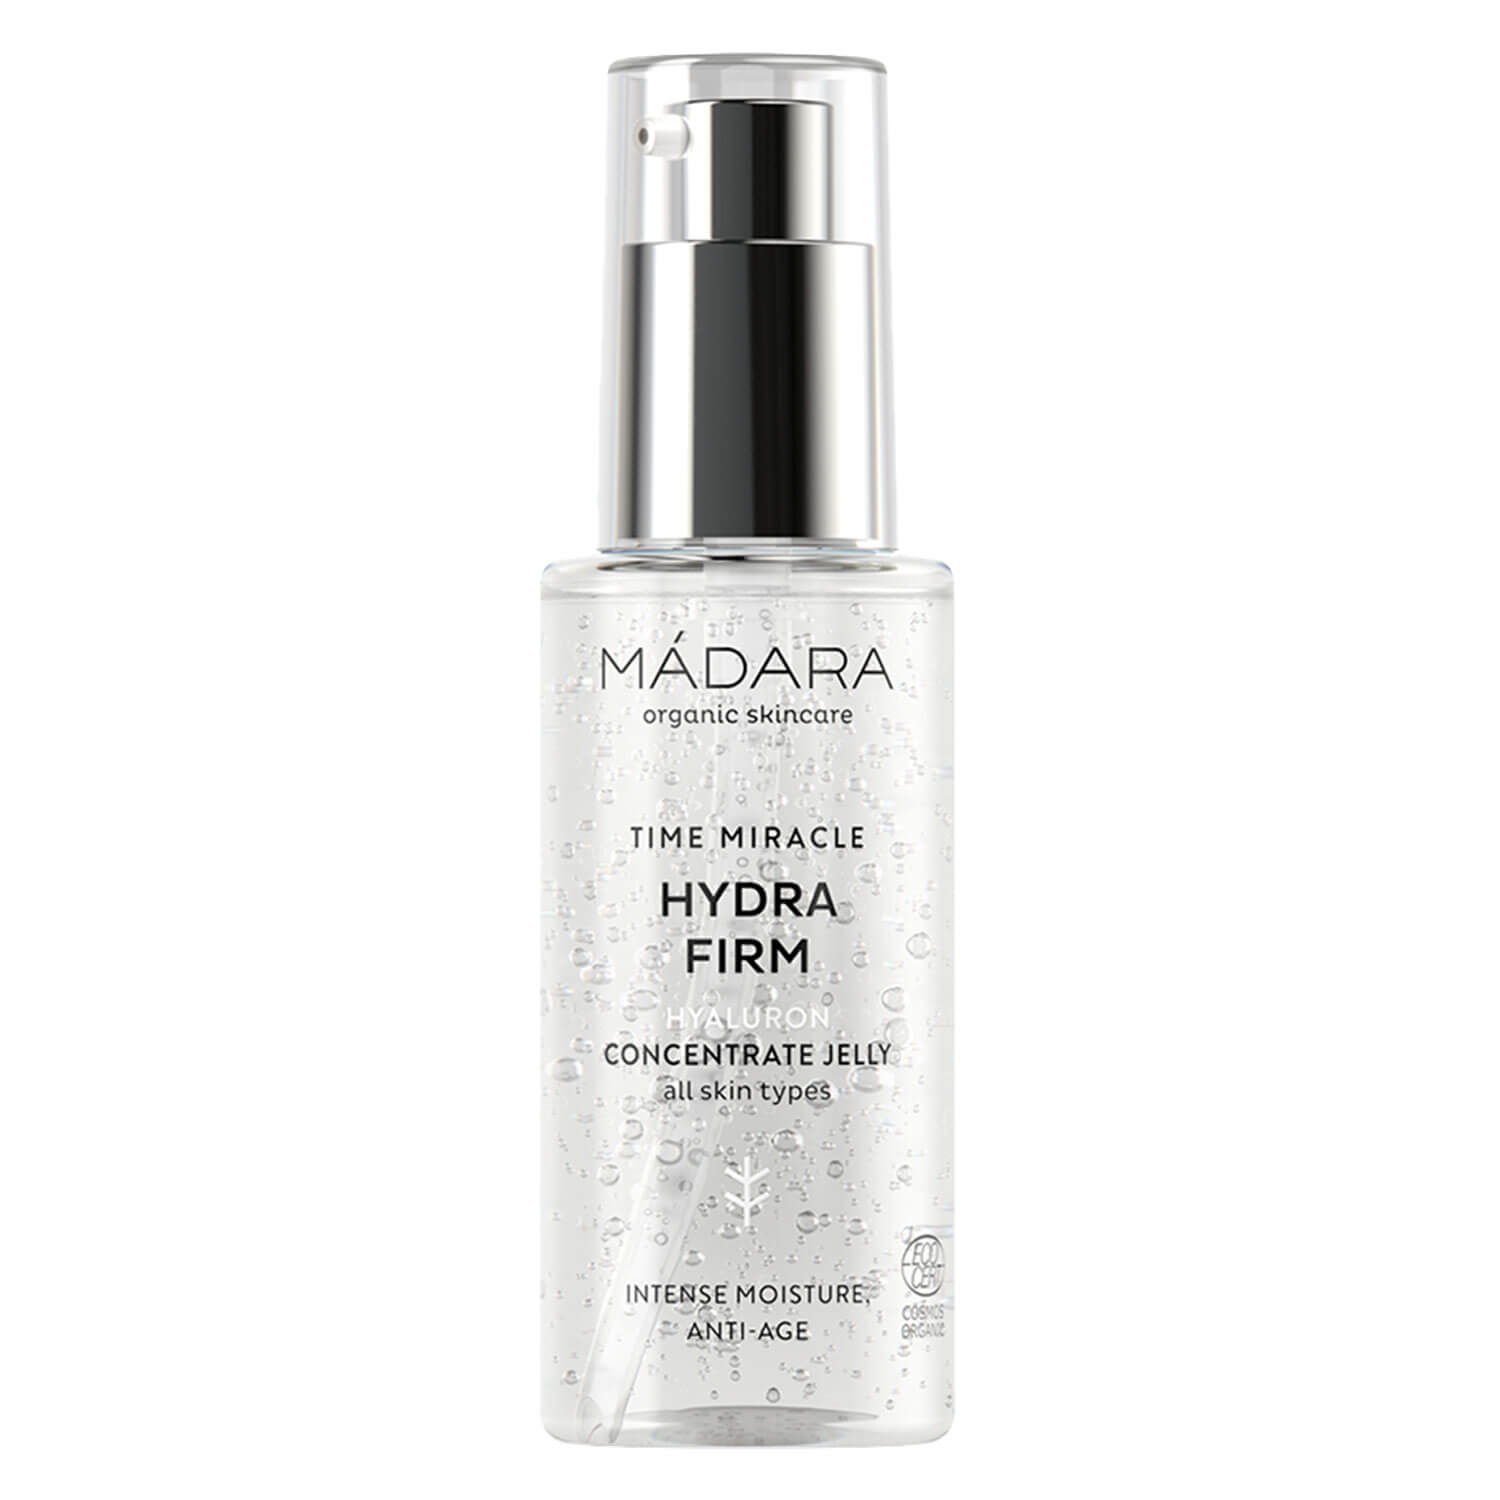 MÁDARA Care - Time Miracle Hydra Firm Hyaluron Concentrate Jelly